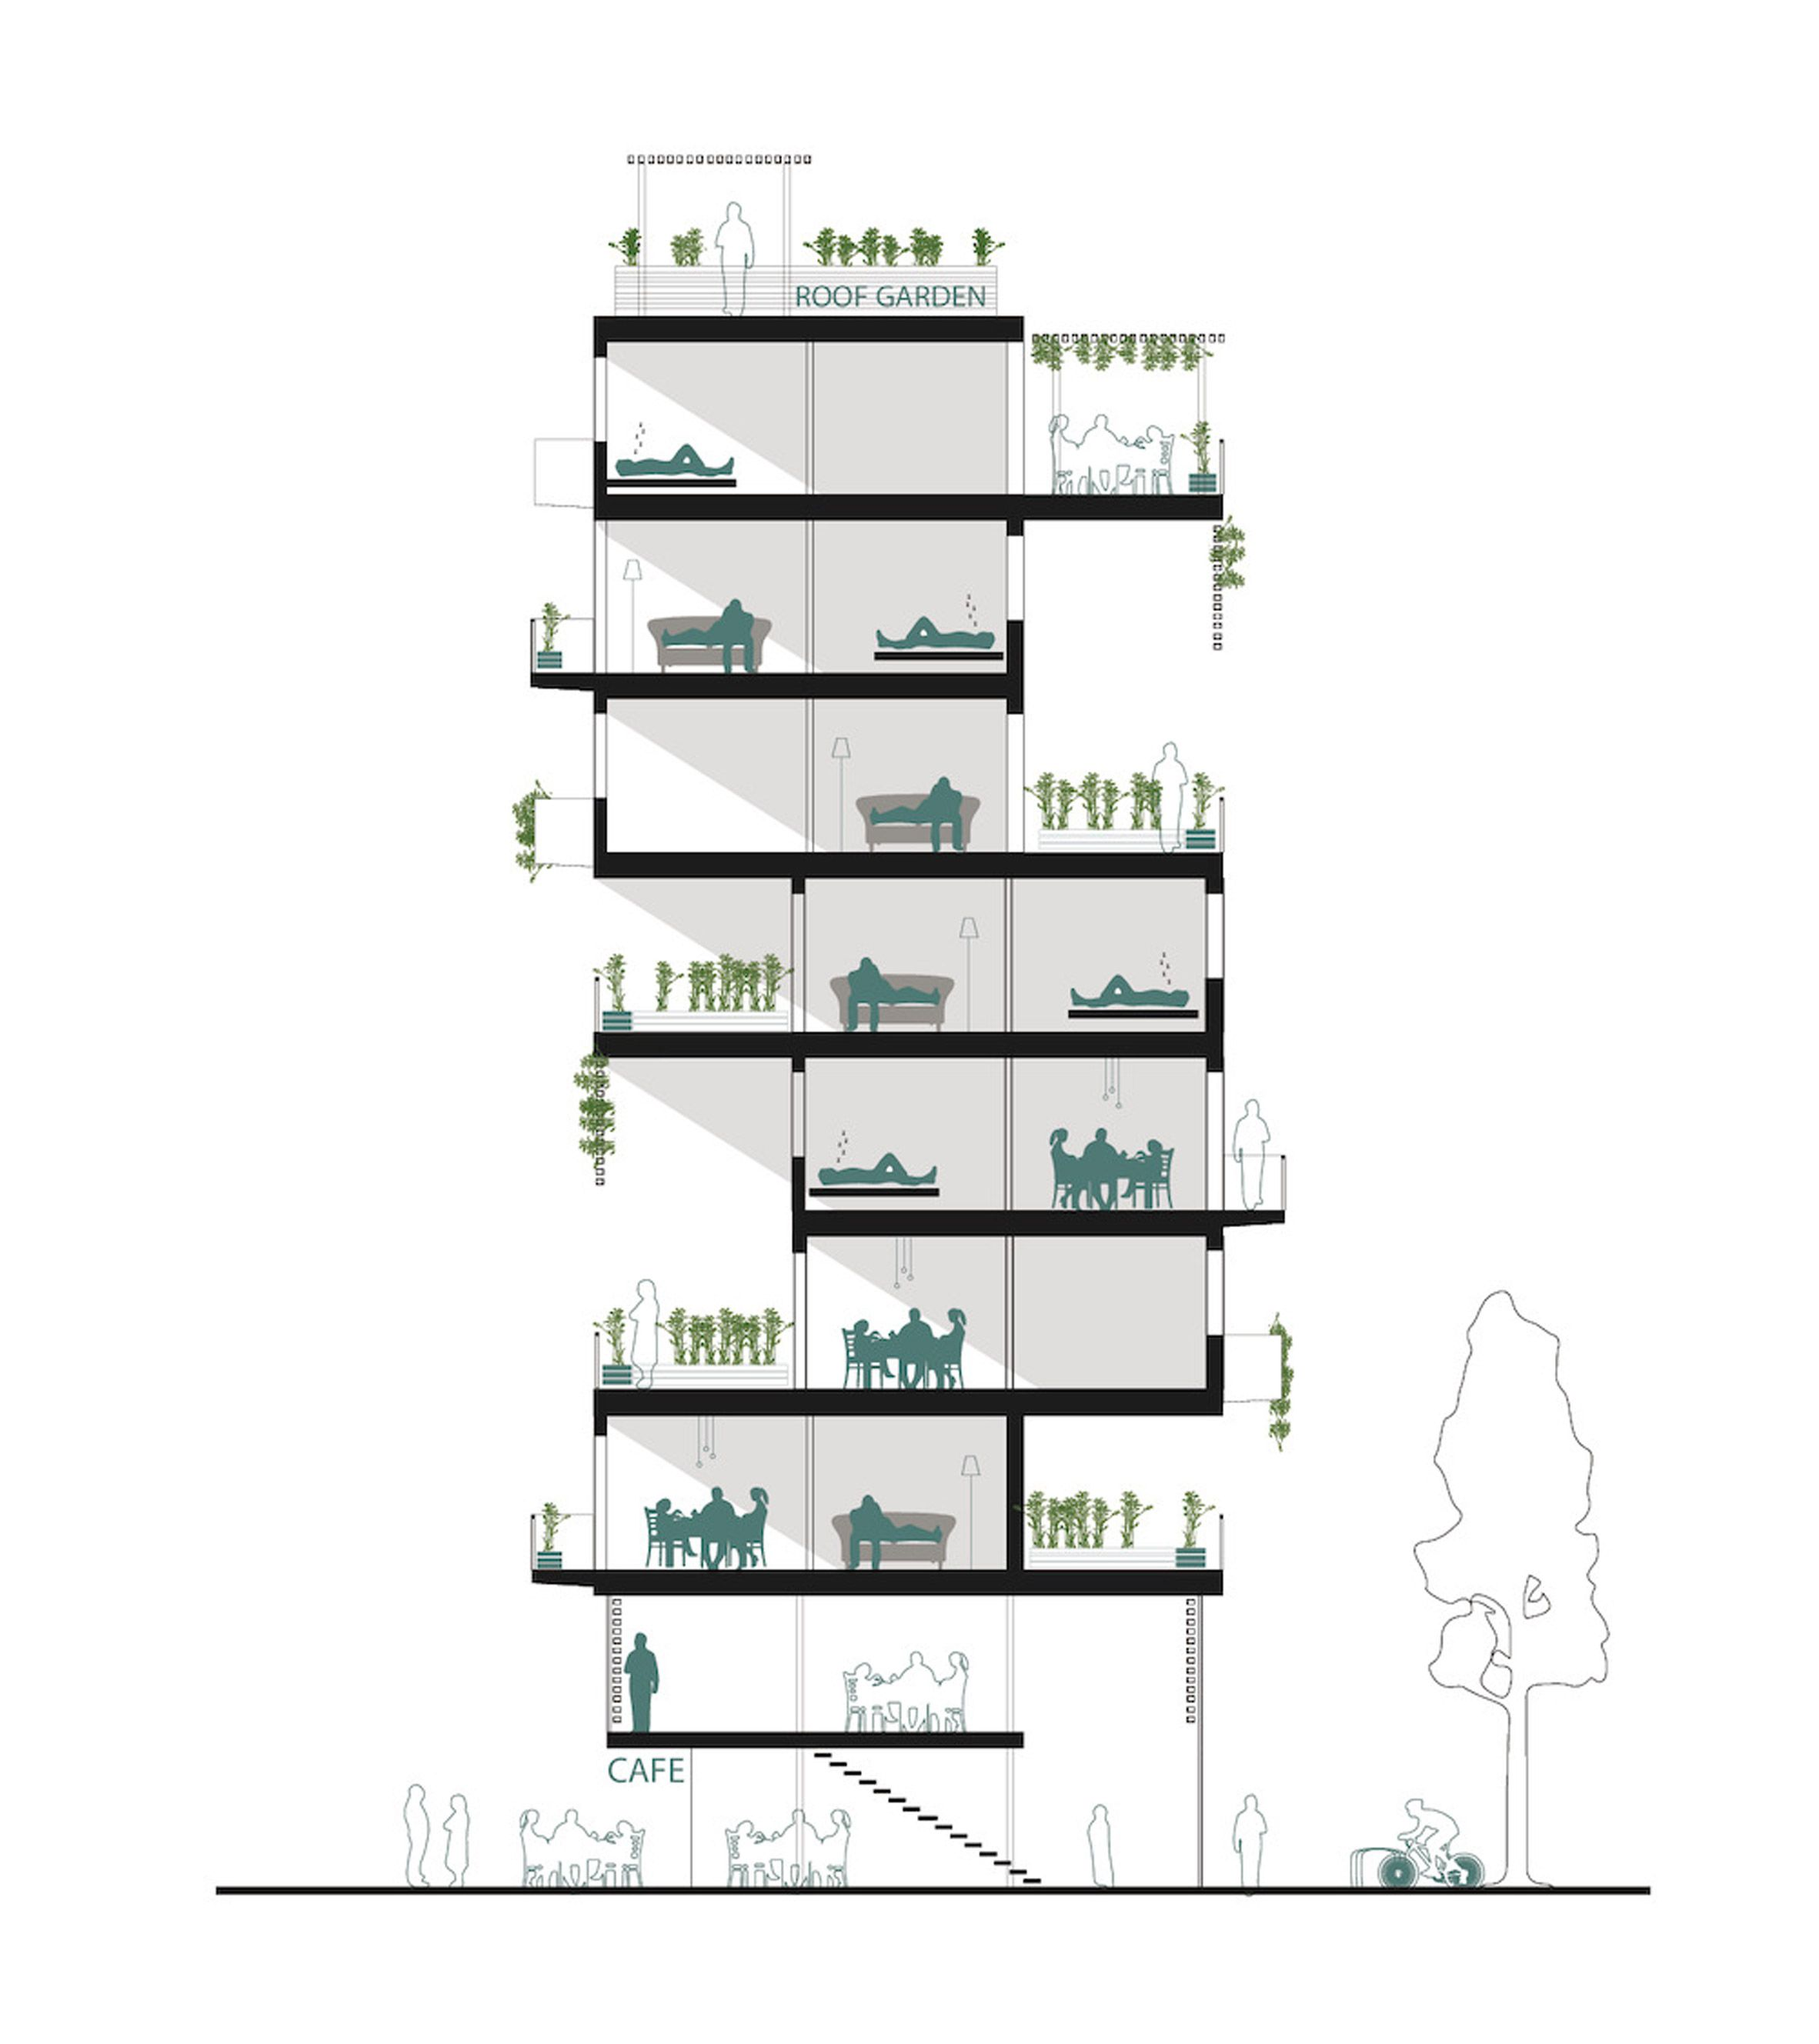 Weston Williamson Proposes Incremental Building For Palestinian Housing Shortage Residential Architecture Weston Architecture Model